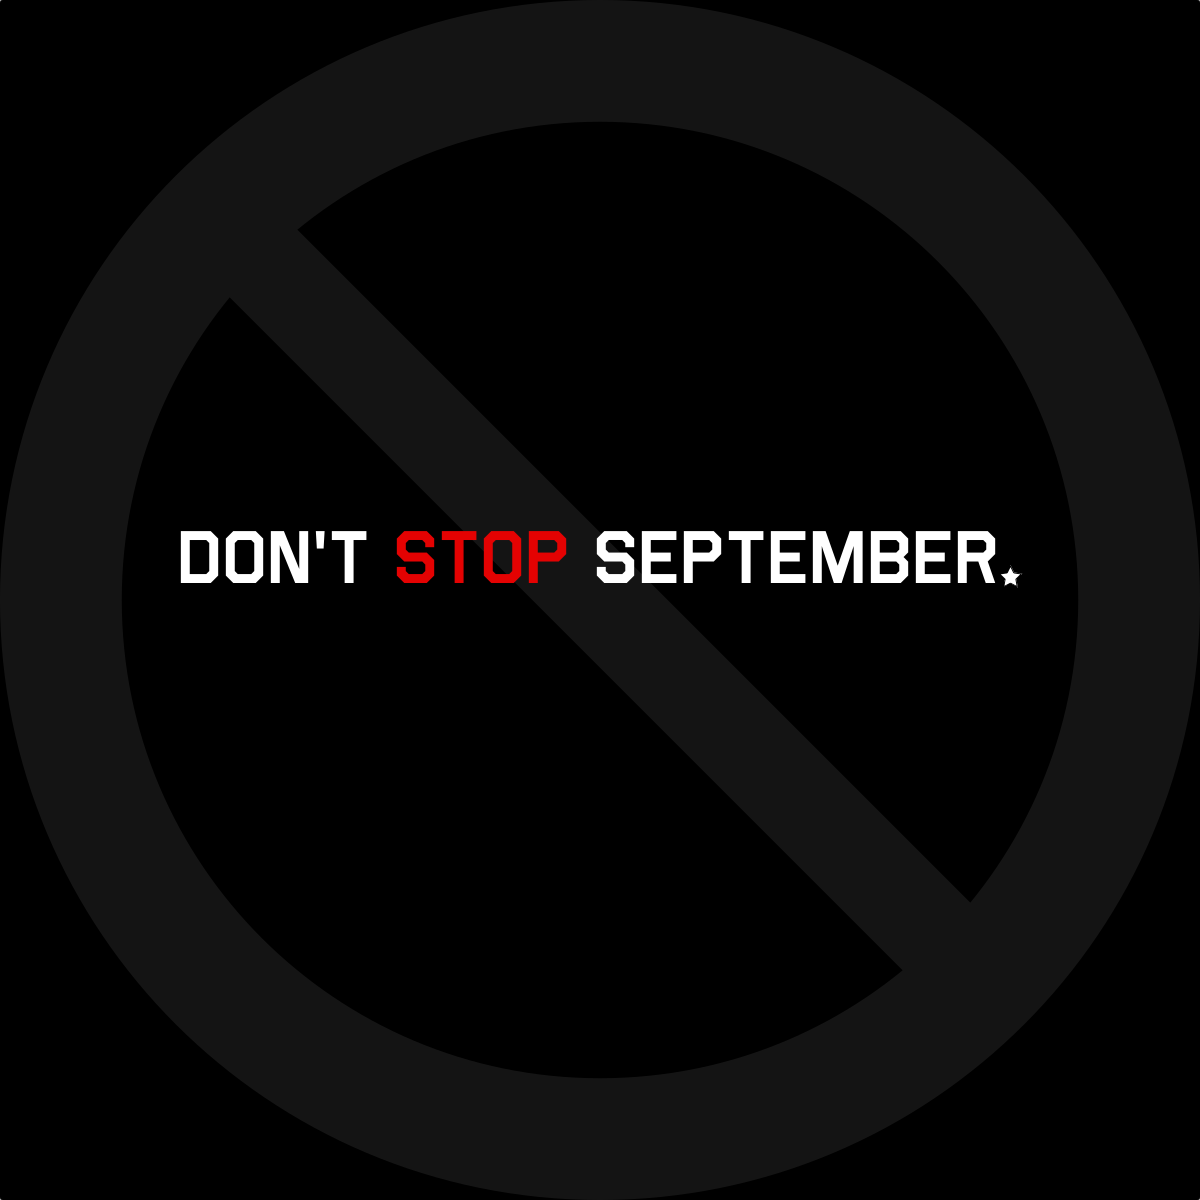 don't stop september.png